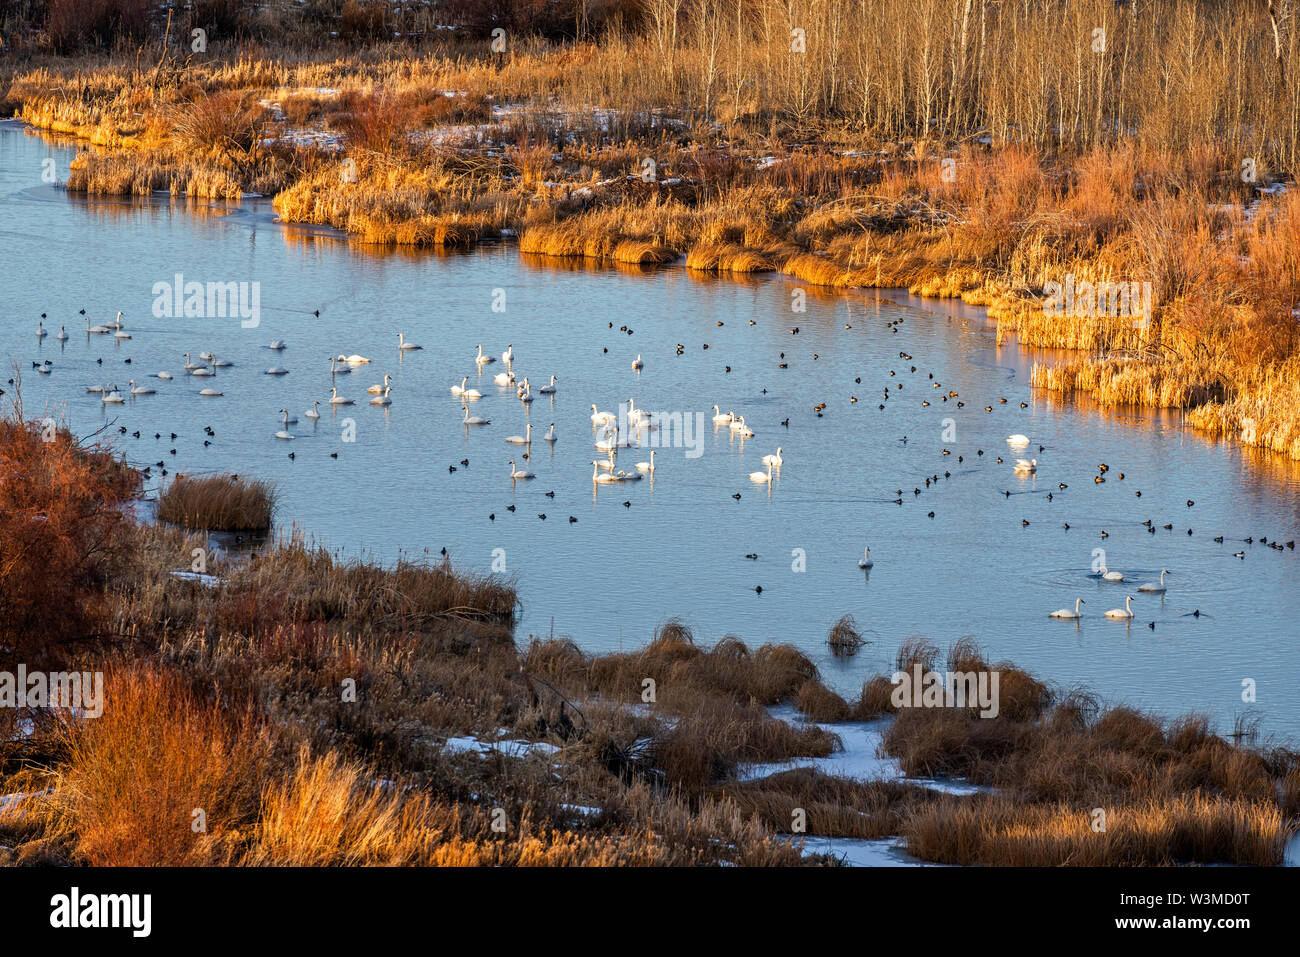 Swans in river in Picabo, Idaho - Stock Image